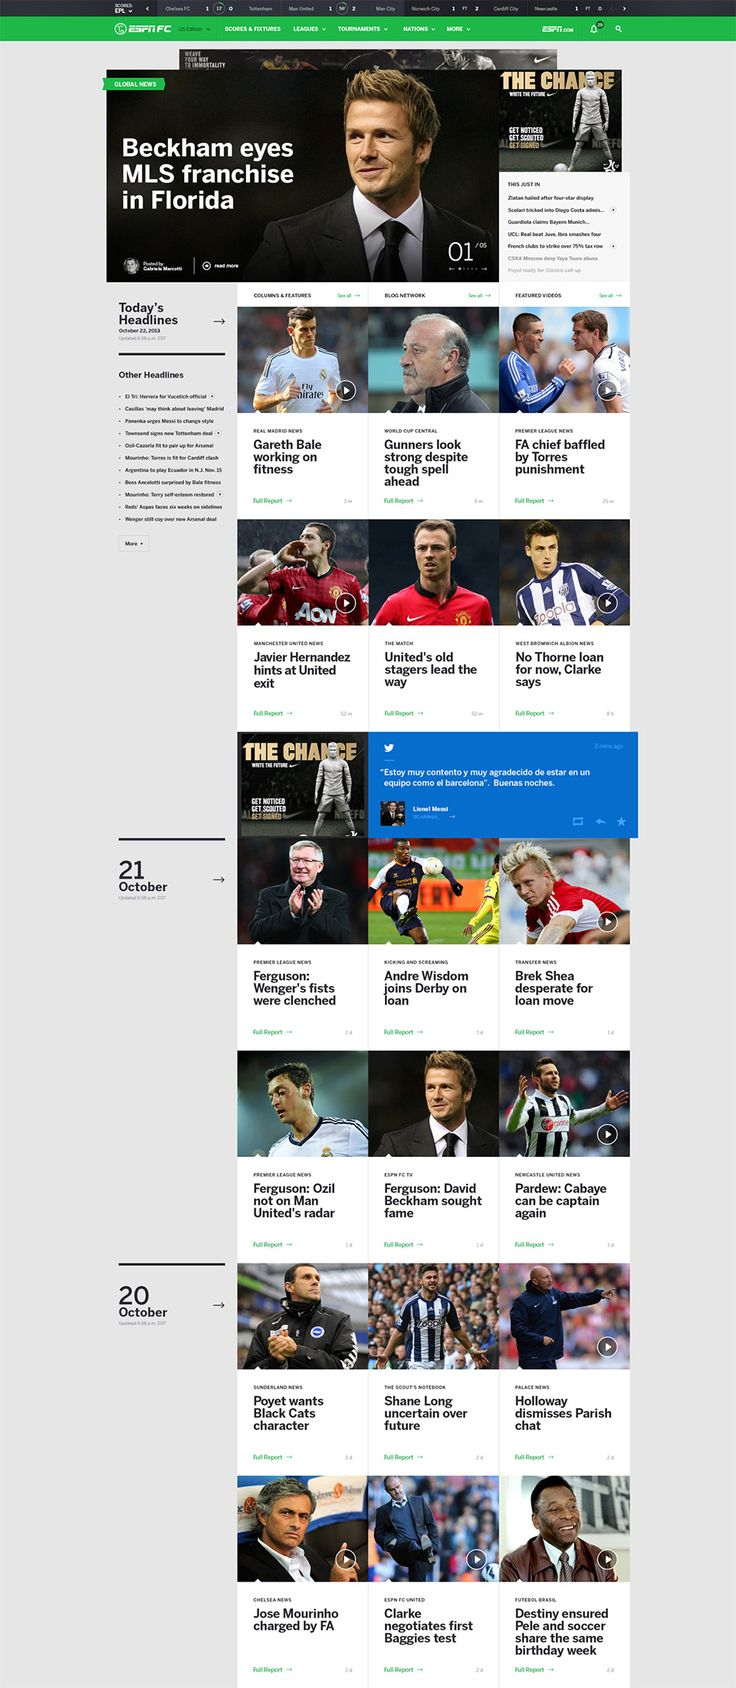 Web layout - love the blurb on the left and video screenshots in rows down the page